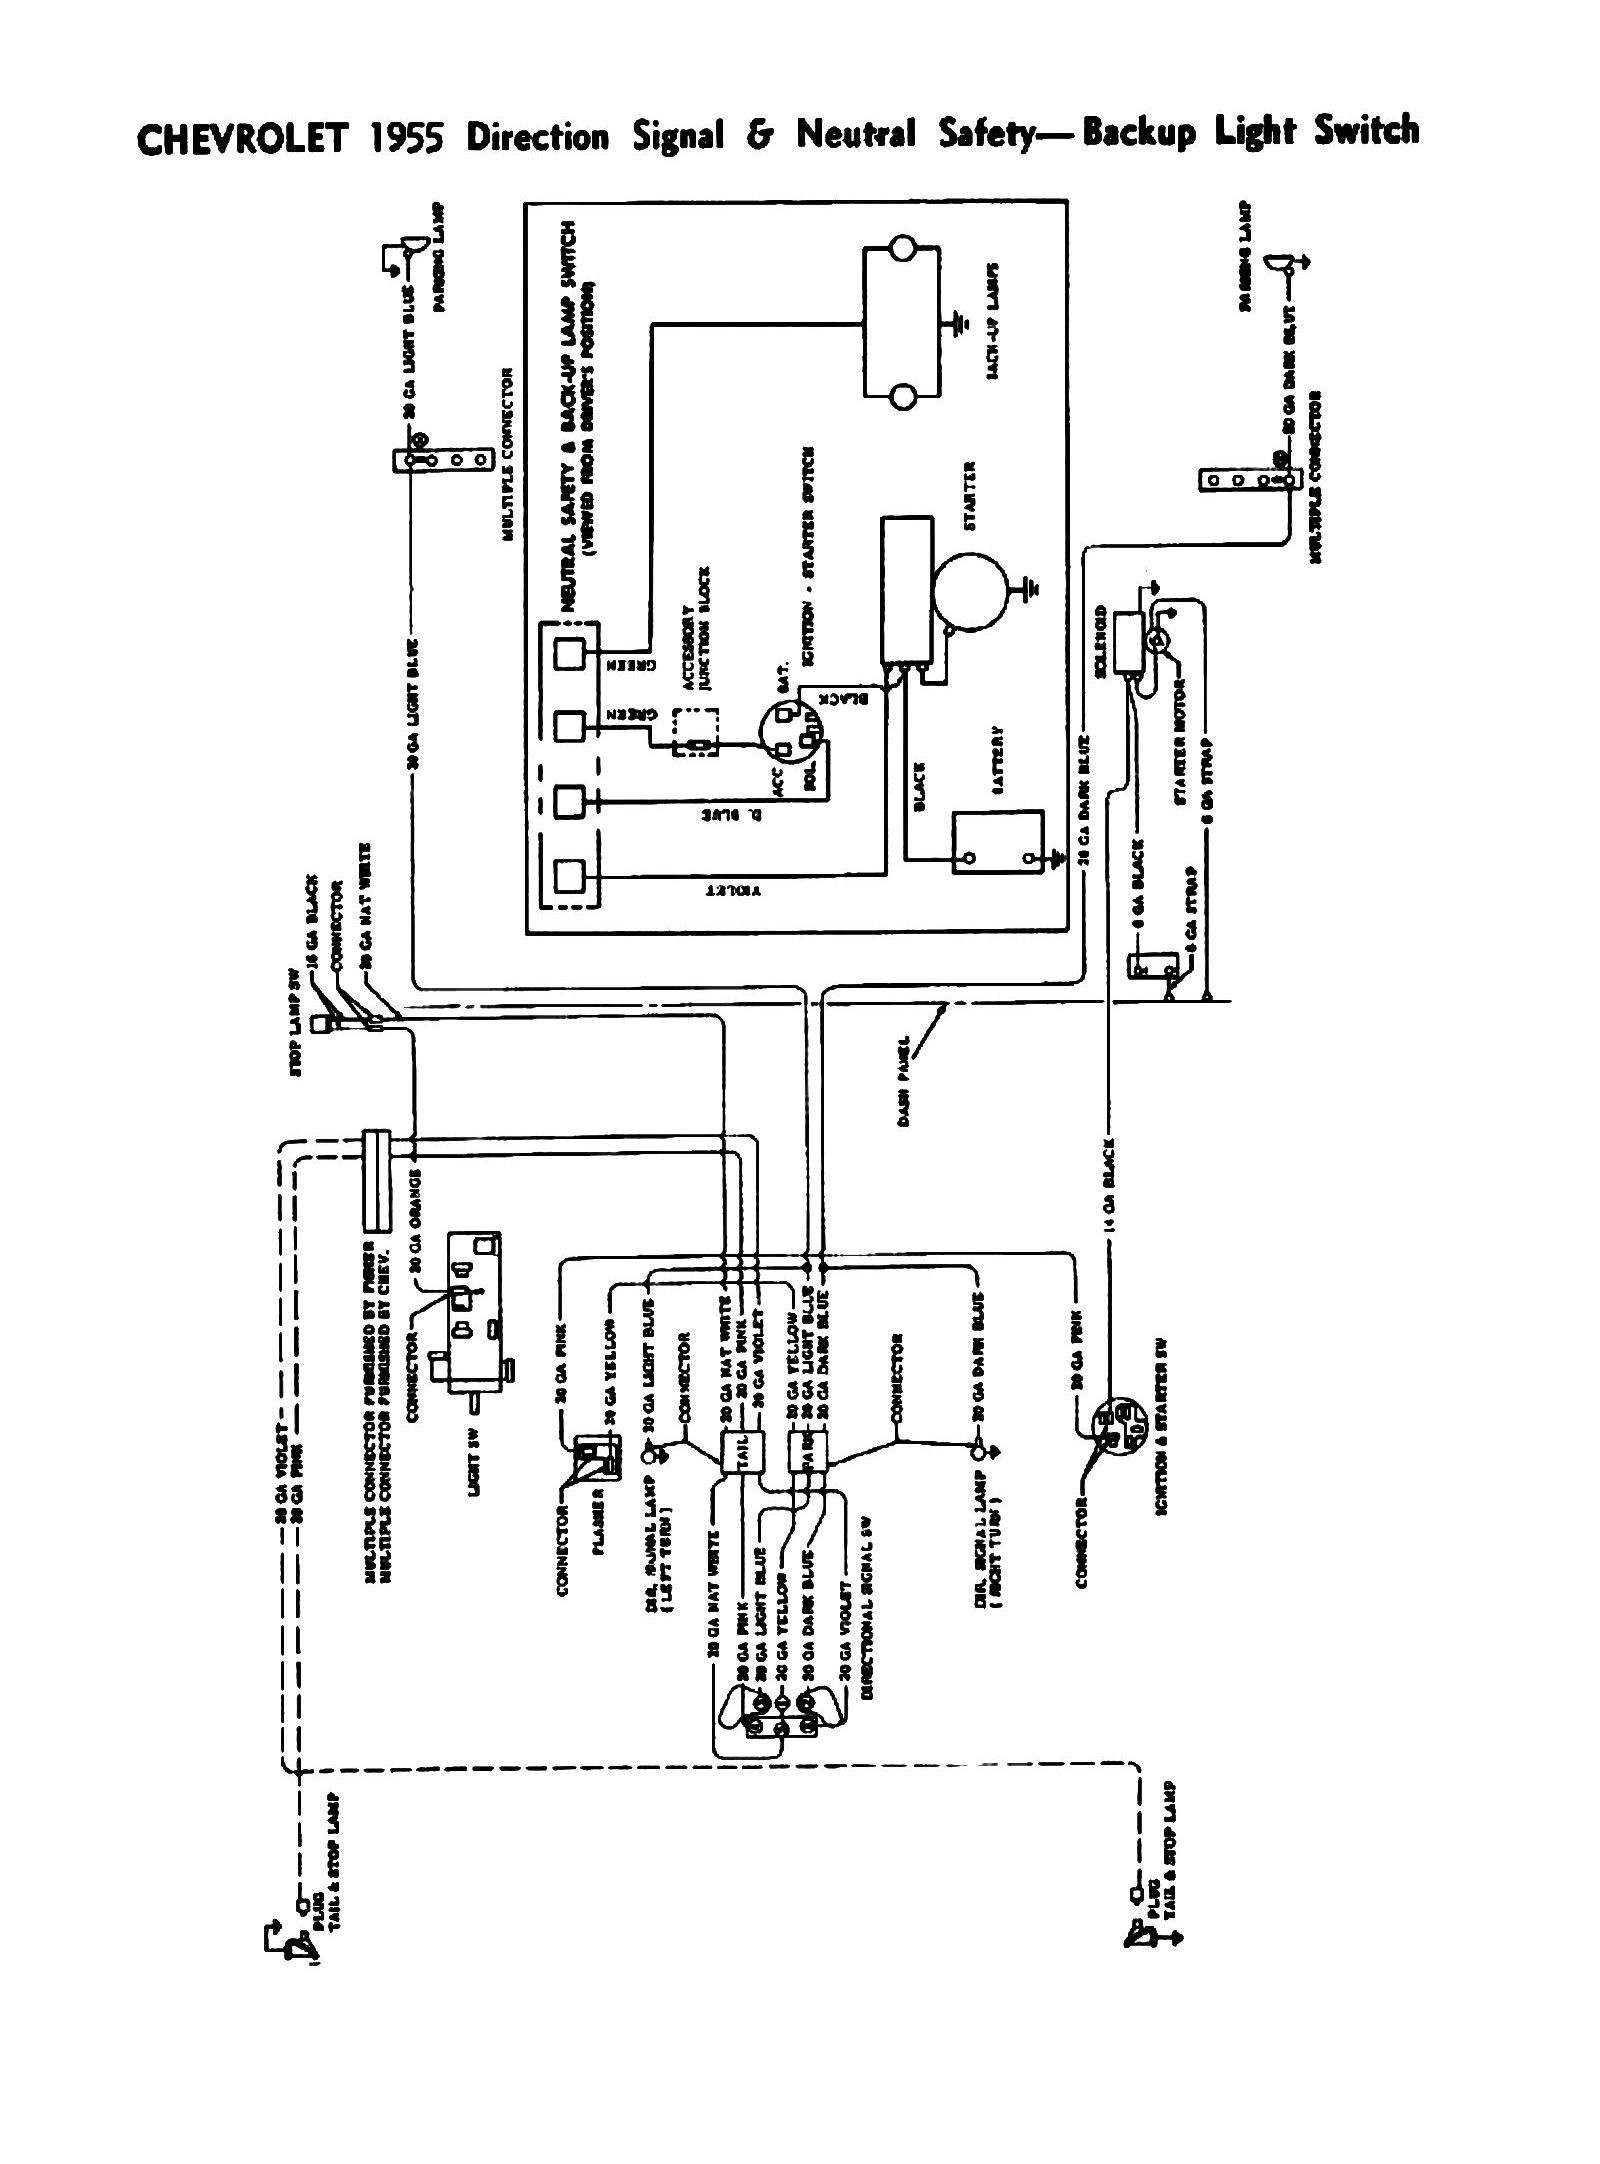 mtd ignition switch wiring diagram | free wiring diagram 146s849h205 mtd wiring diagram mtd wiring diagram manual #6